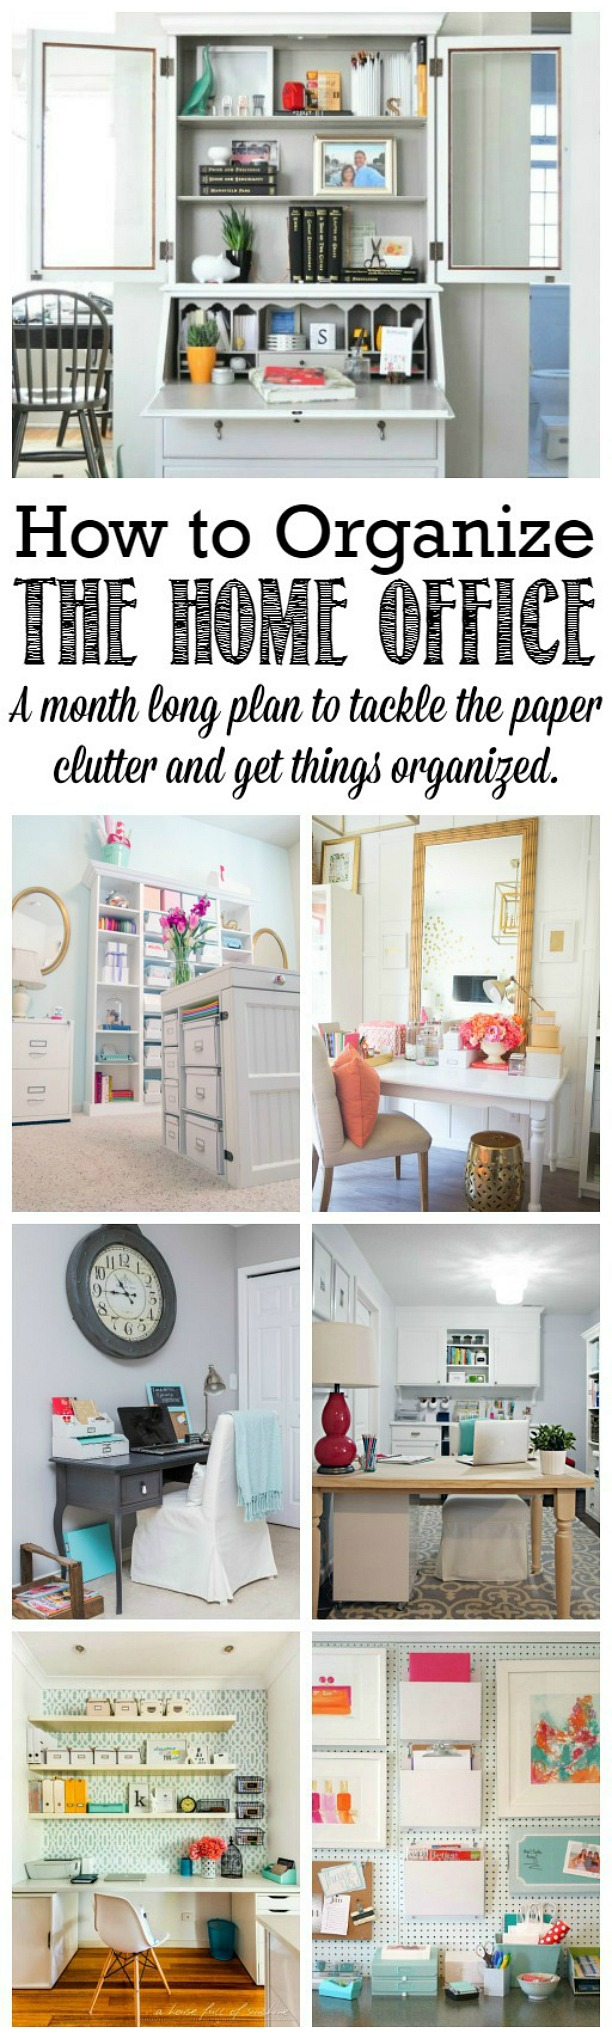 Top 10 Organization Ideas of 2015 - Clean and Scentsible